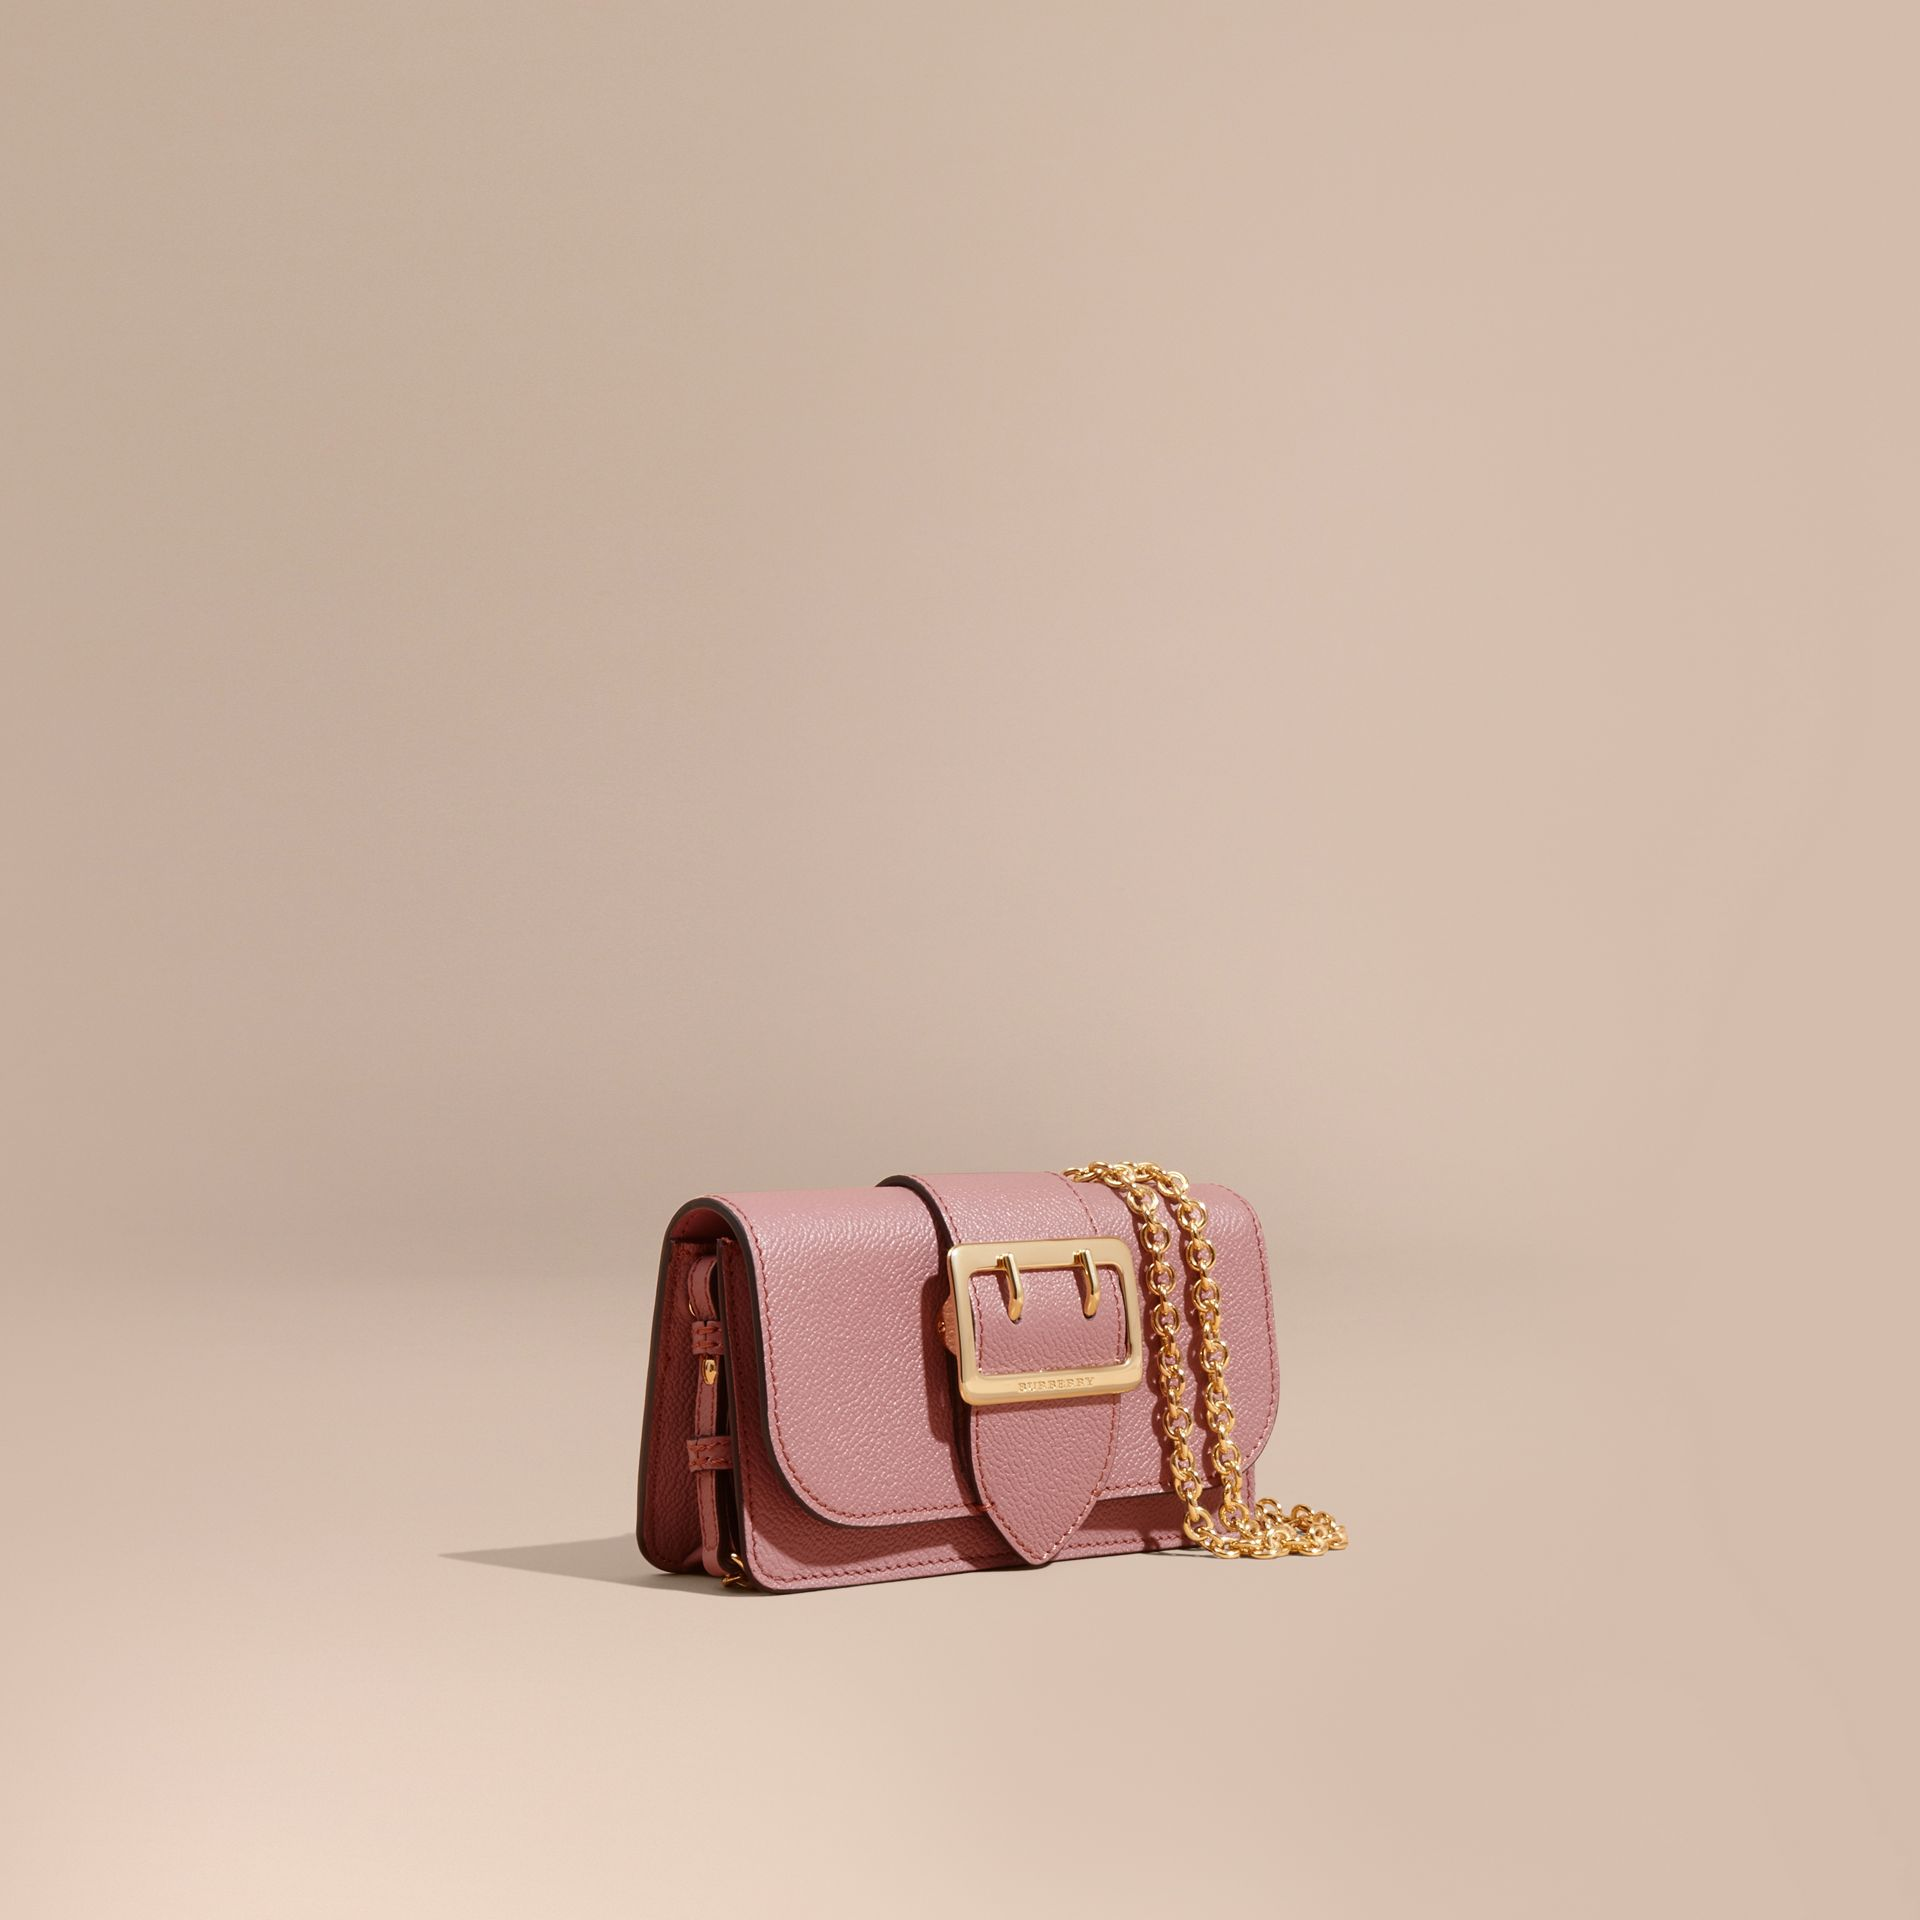 The Mini Buckle Bag in Grainy Leather in Dusty Pink - Women | Burberry - gallery image 0